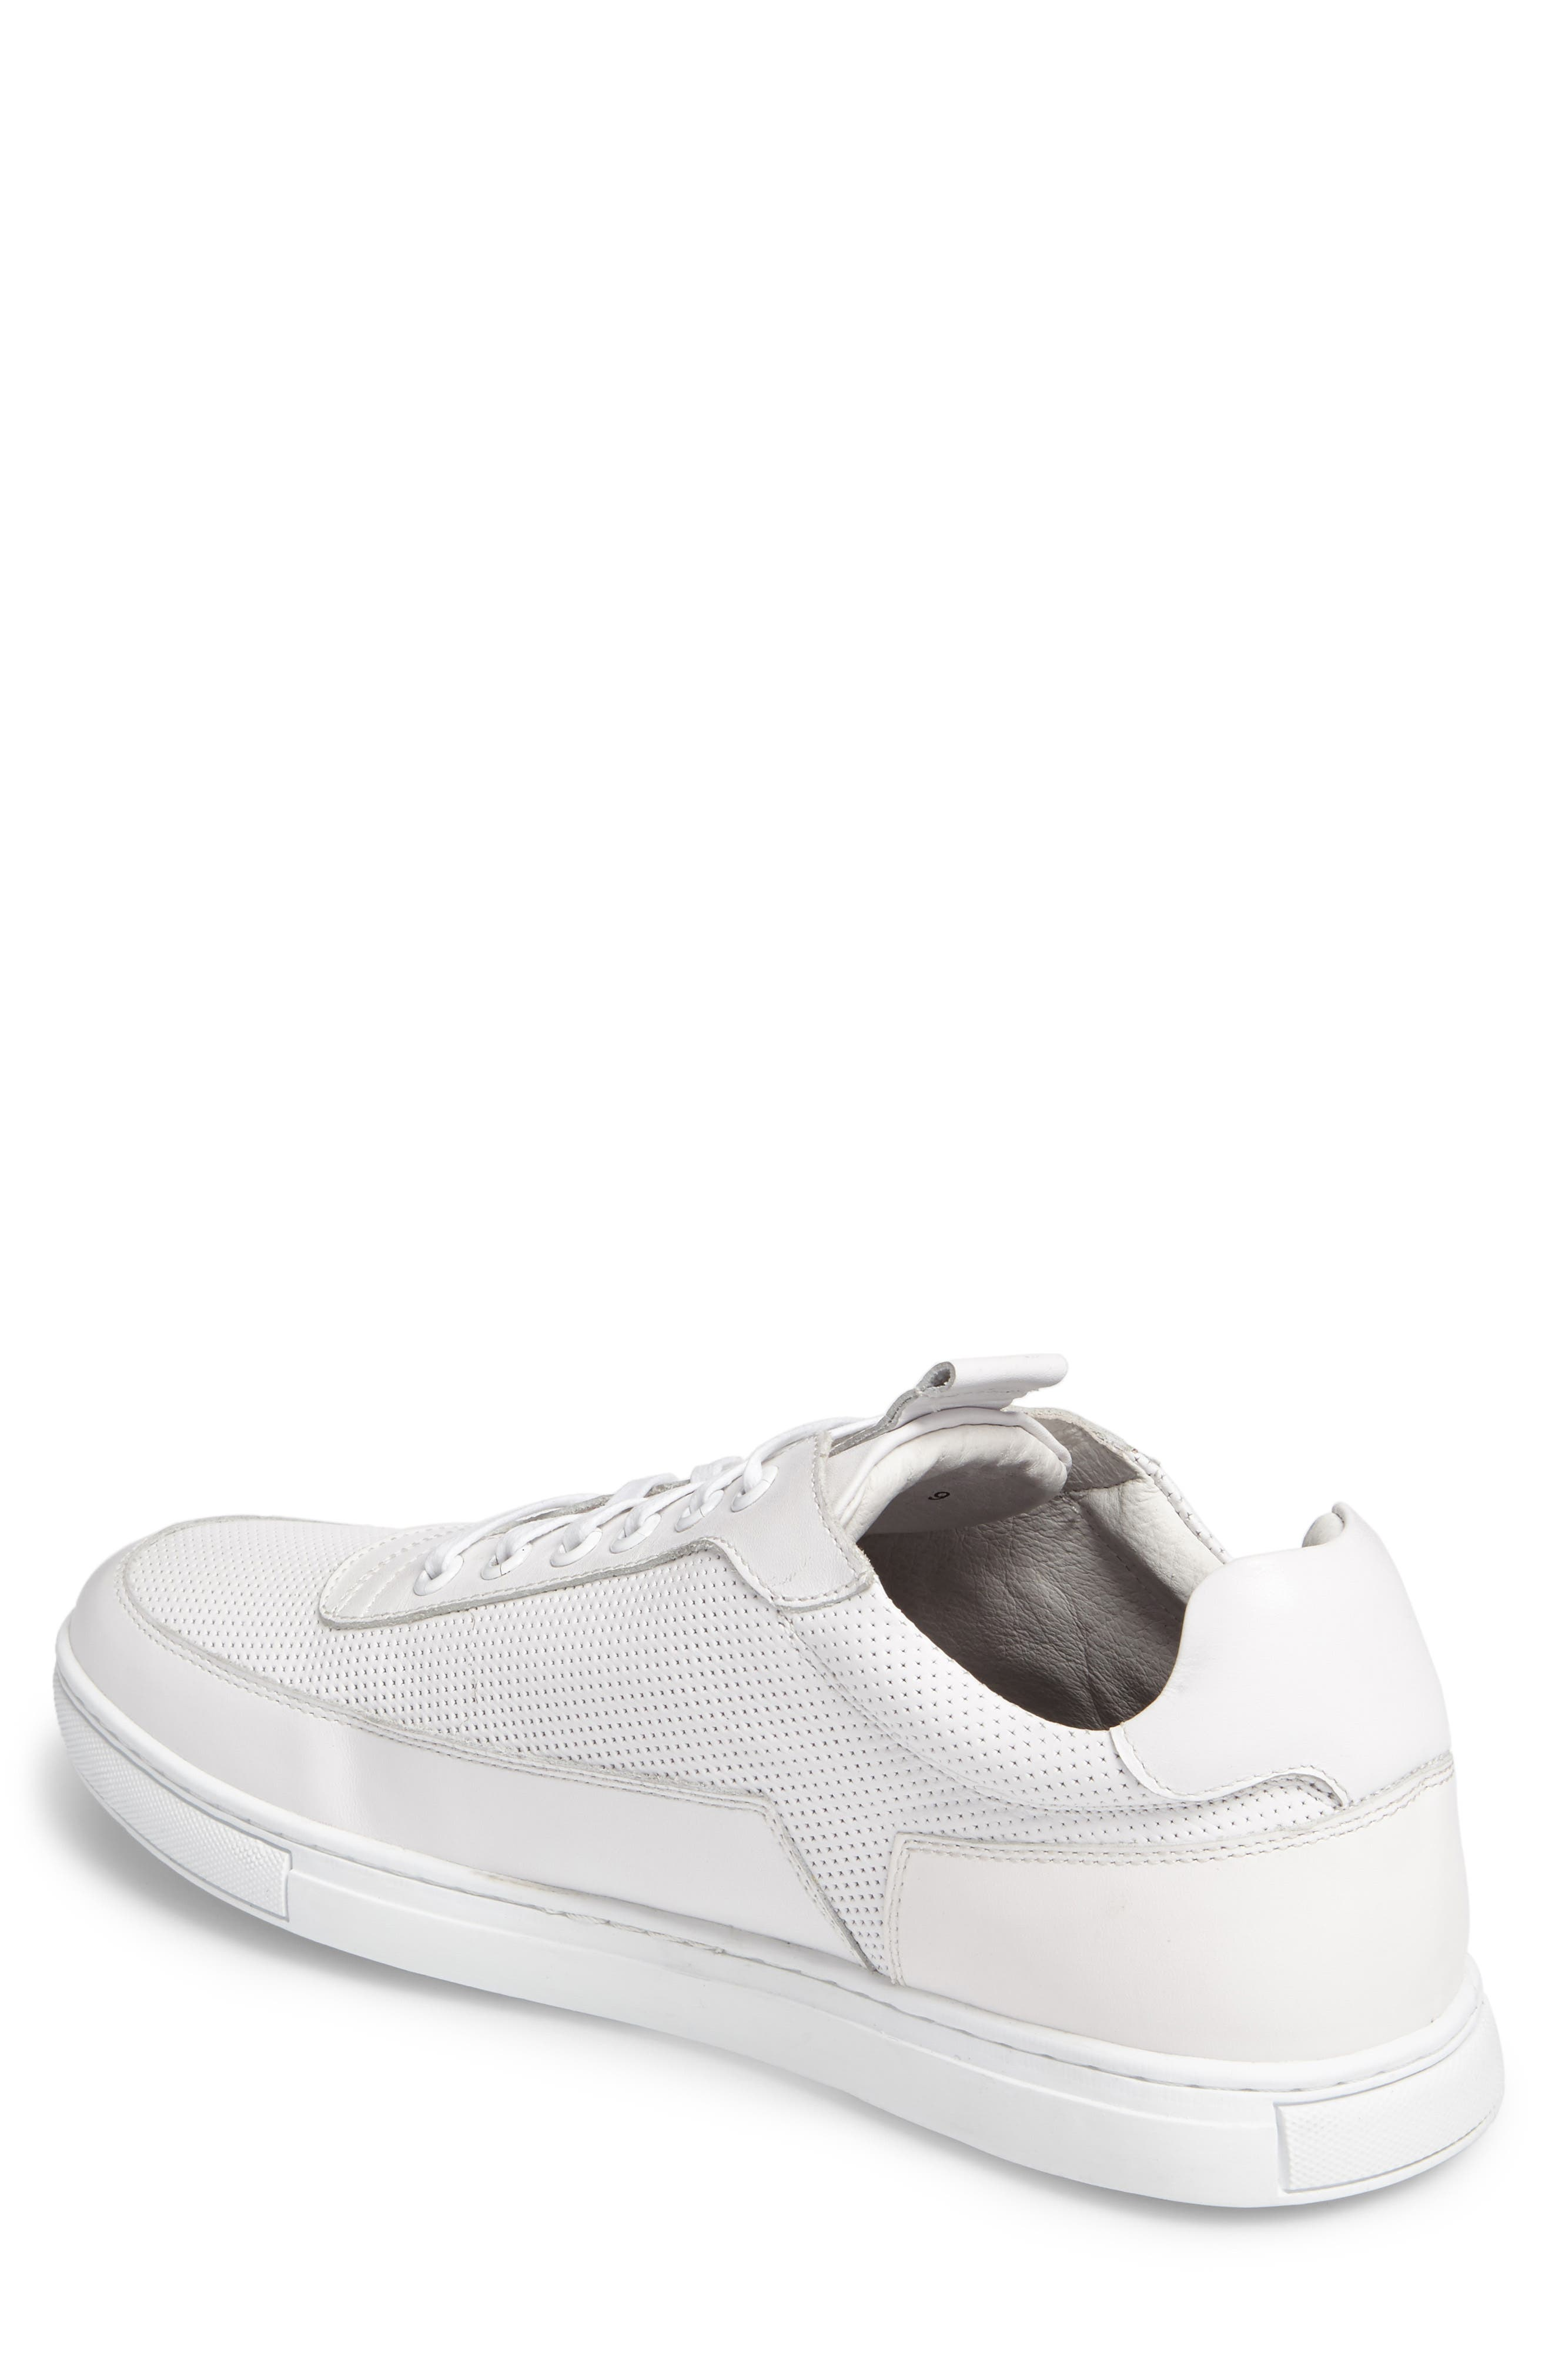 Harmony Sneaker,                             Alternate thumbnail 2, color,                             WHITE LEATHER